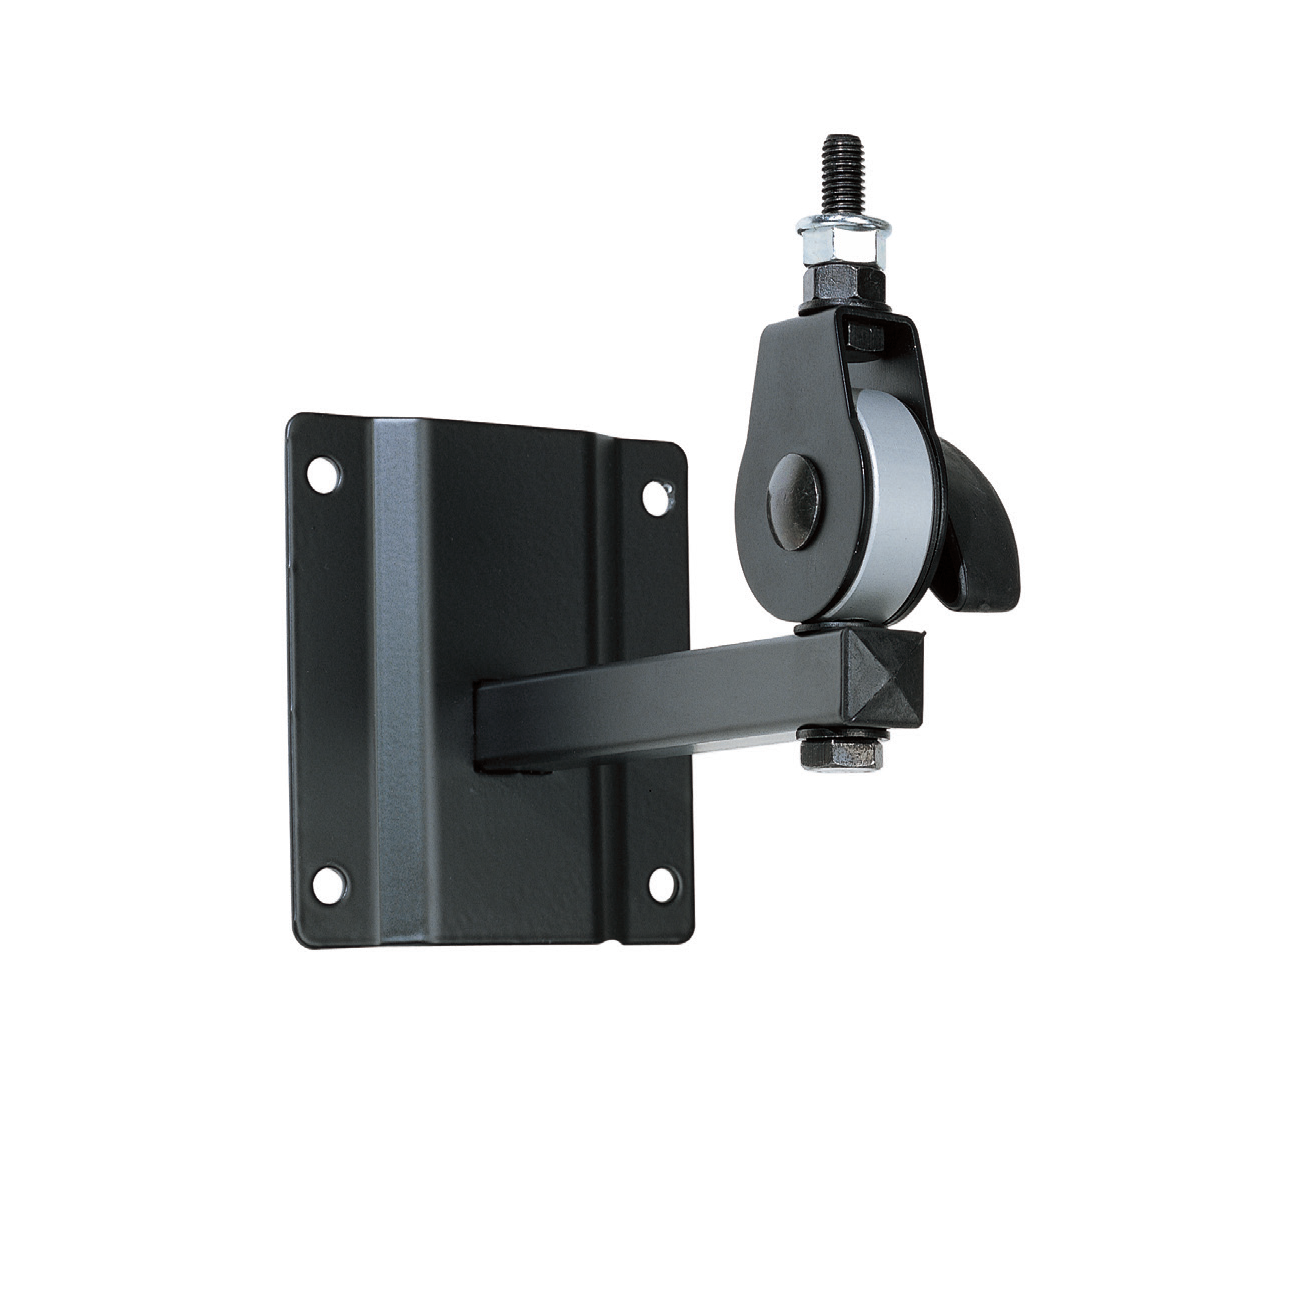 Wall Mounting Speaker Bracket With M10 Thread Ral 9005